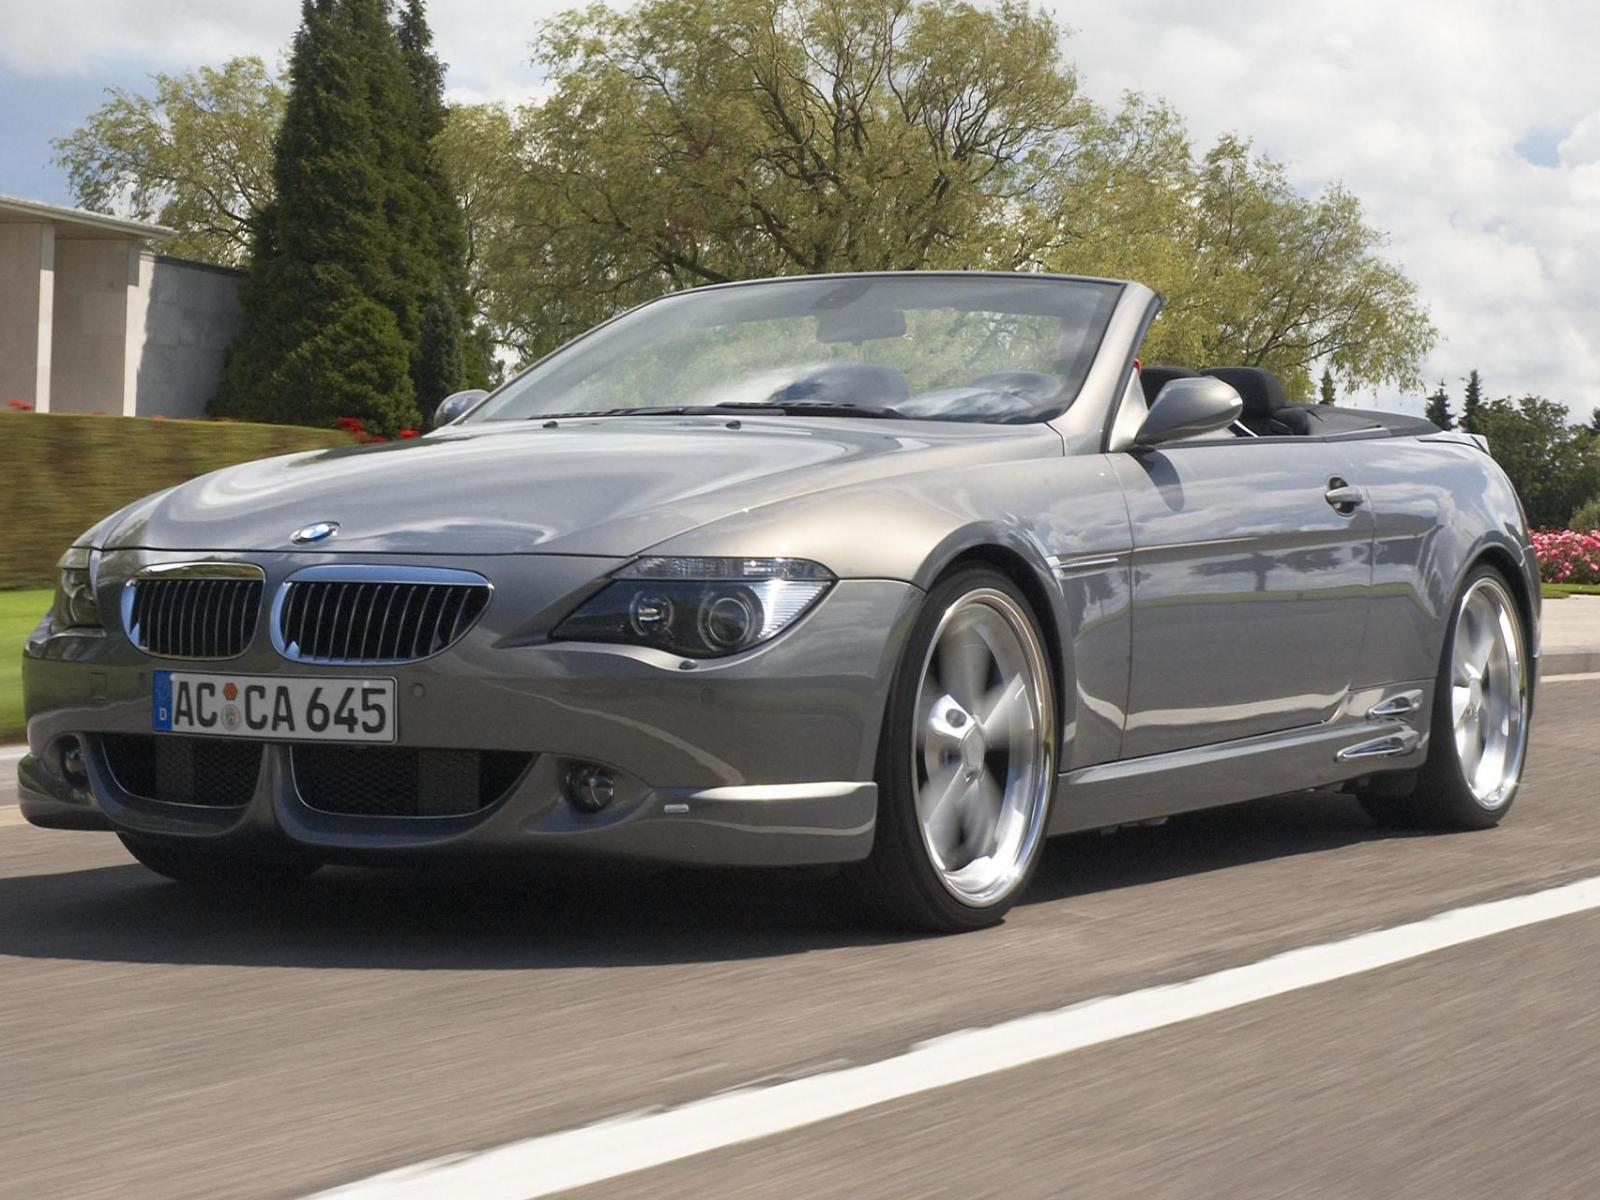 AC Schnitzer ACS6 Cabriolet (E64) photo 14097